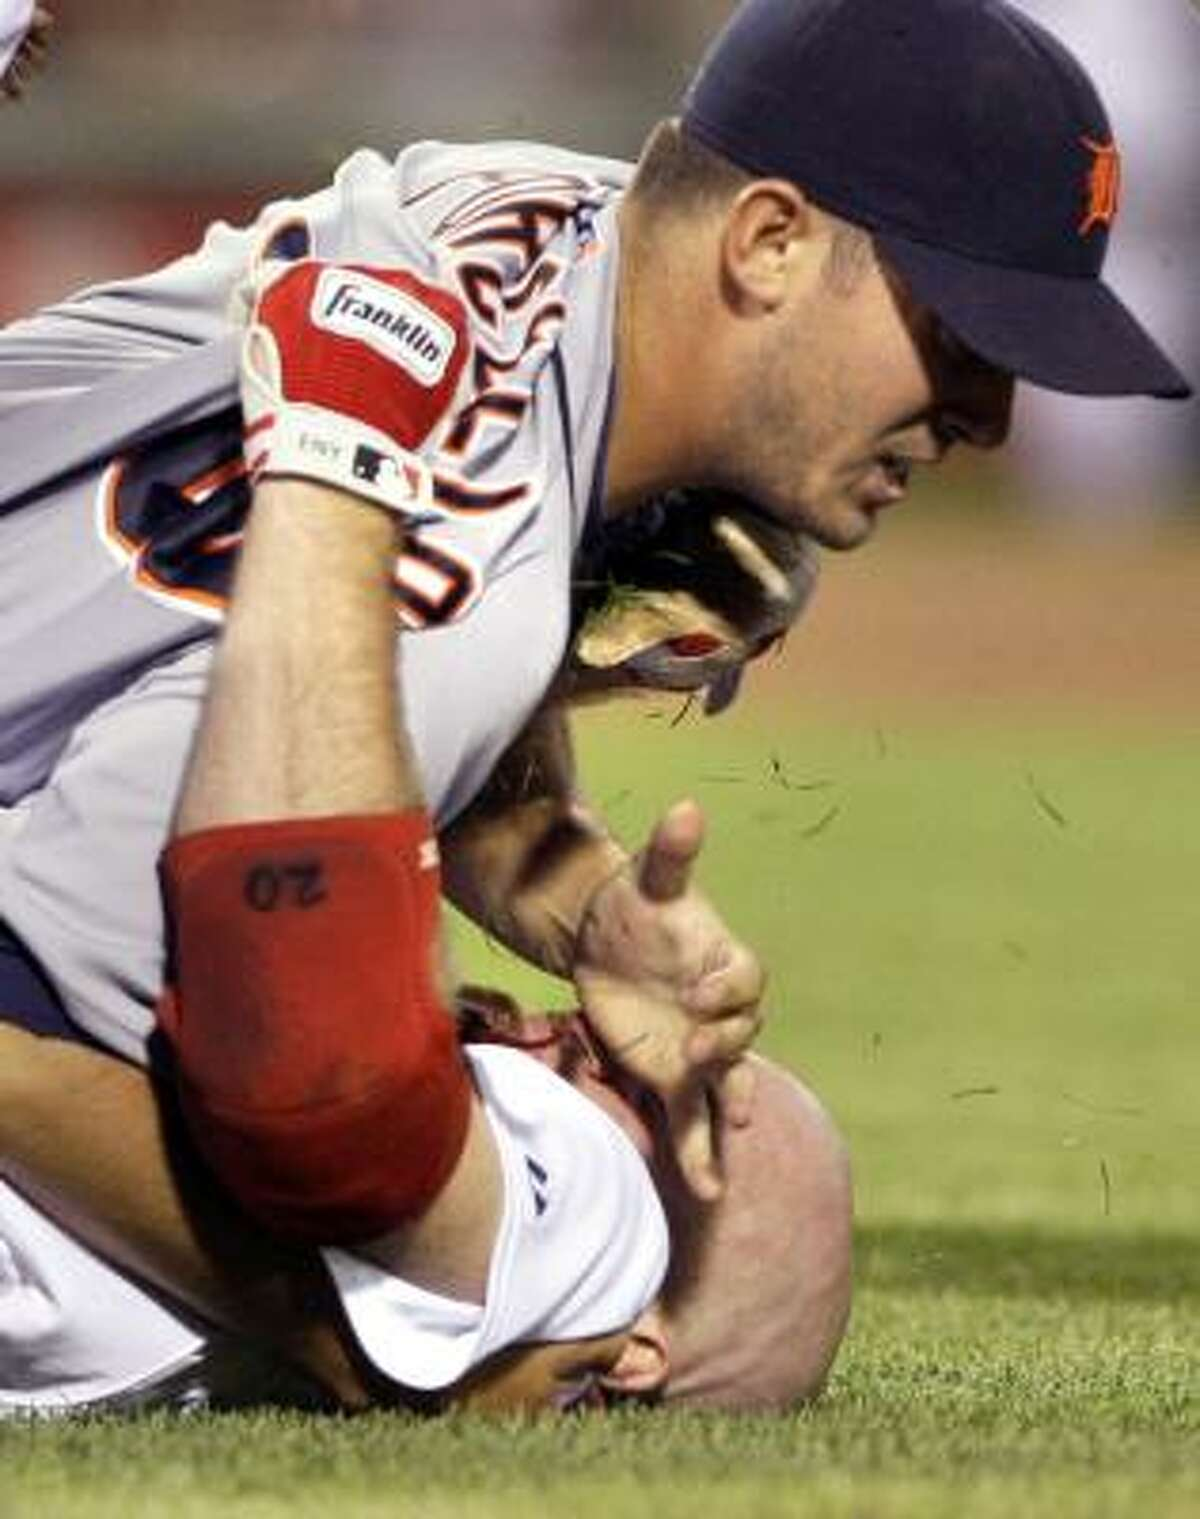 The Tigers' Rick Porcello, top, wrestles with Red Sox first baseman Kevin Youkilis after Youkilis charged the mound and tackled Porcello.